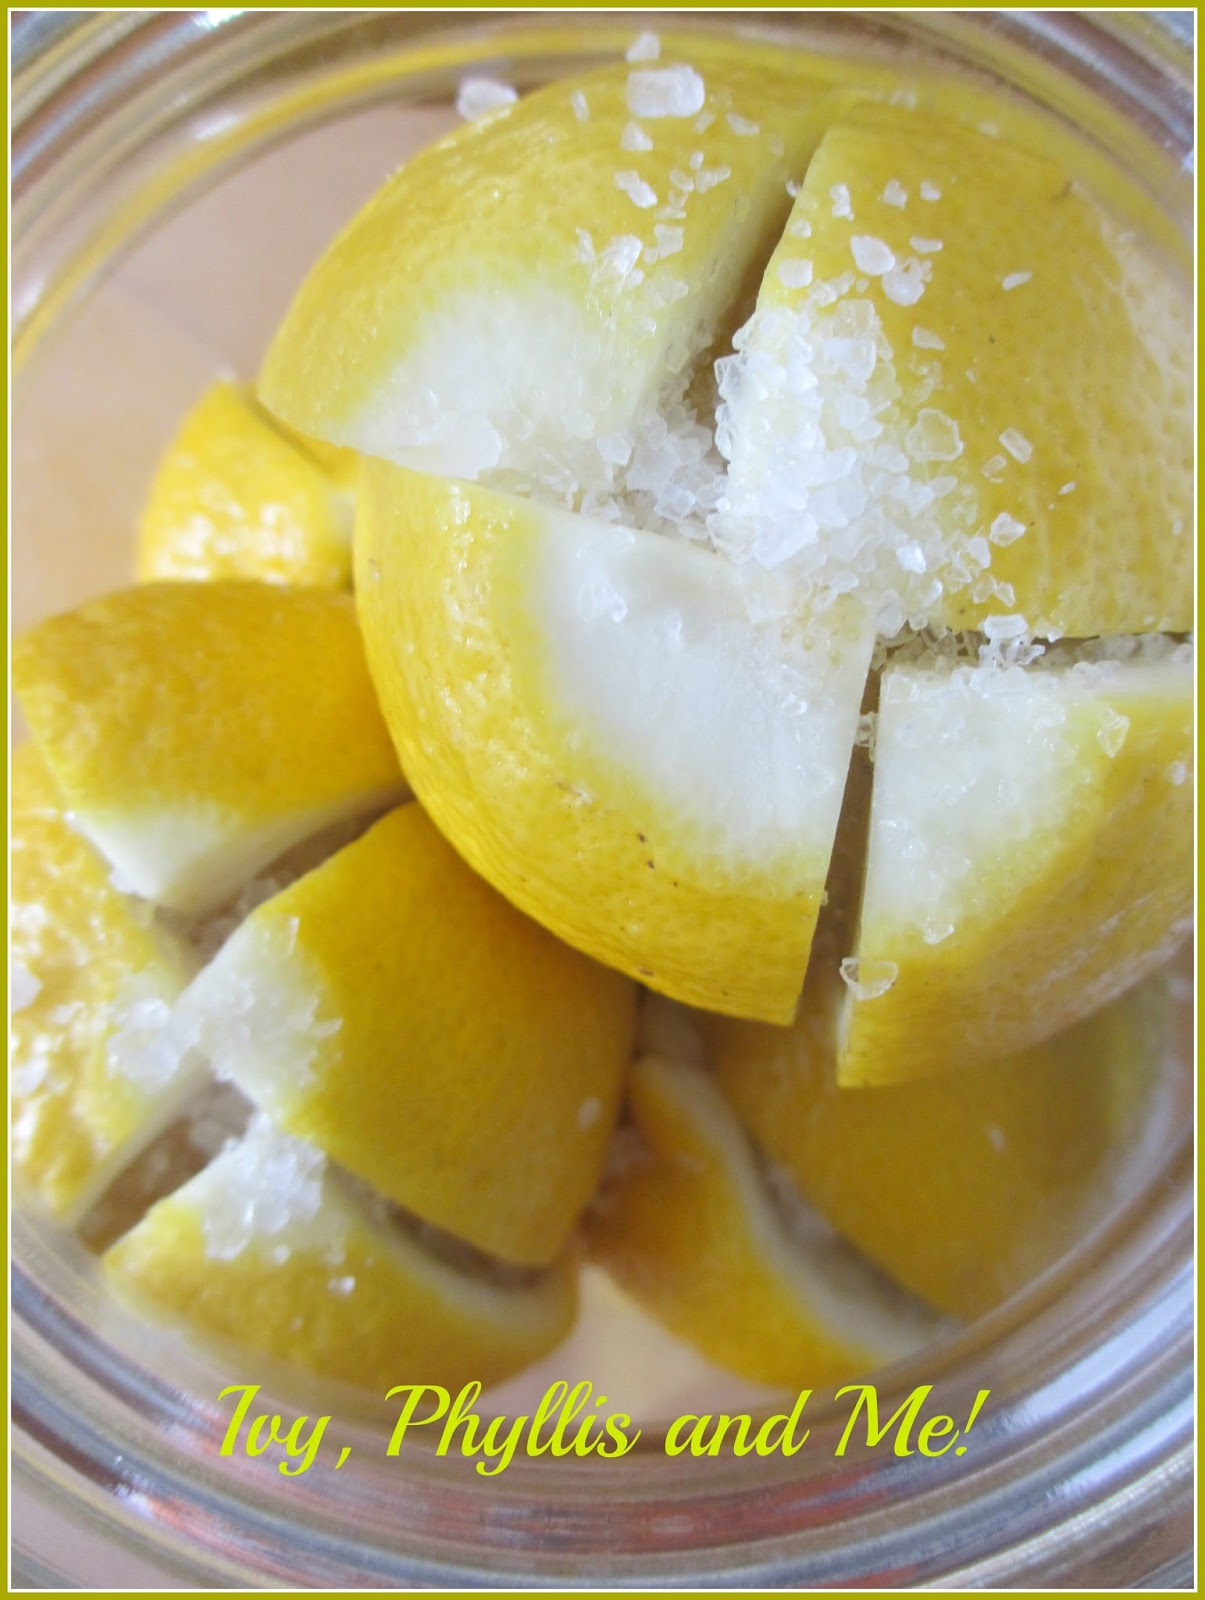 Ivy, Phyllis and Me!: PRESERVED LEMONS